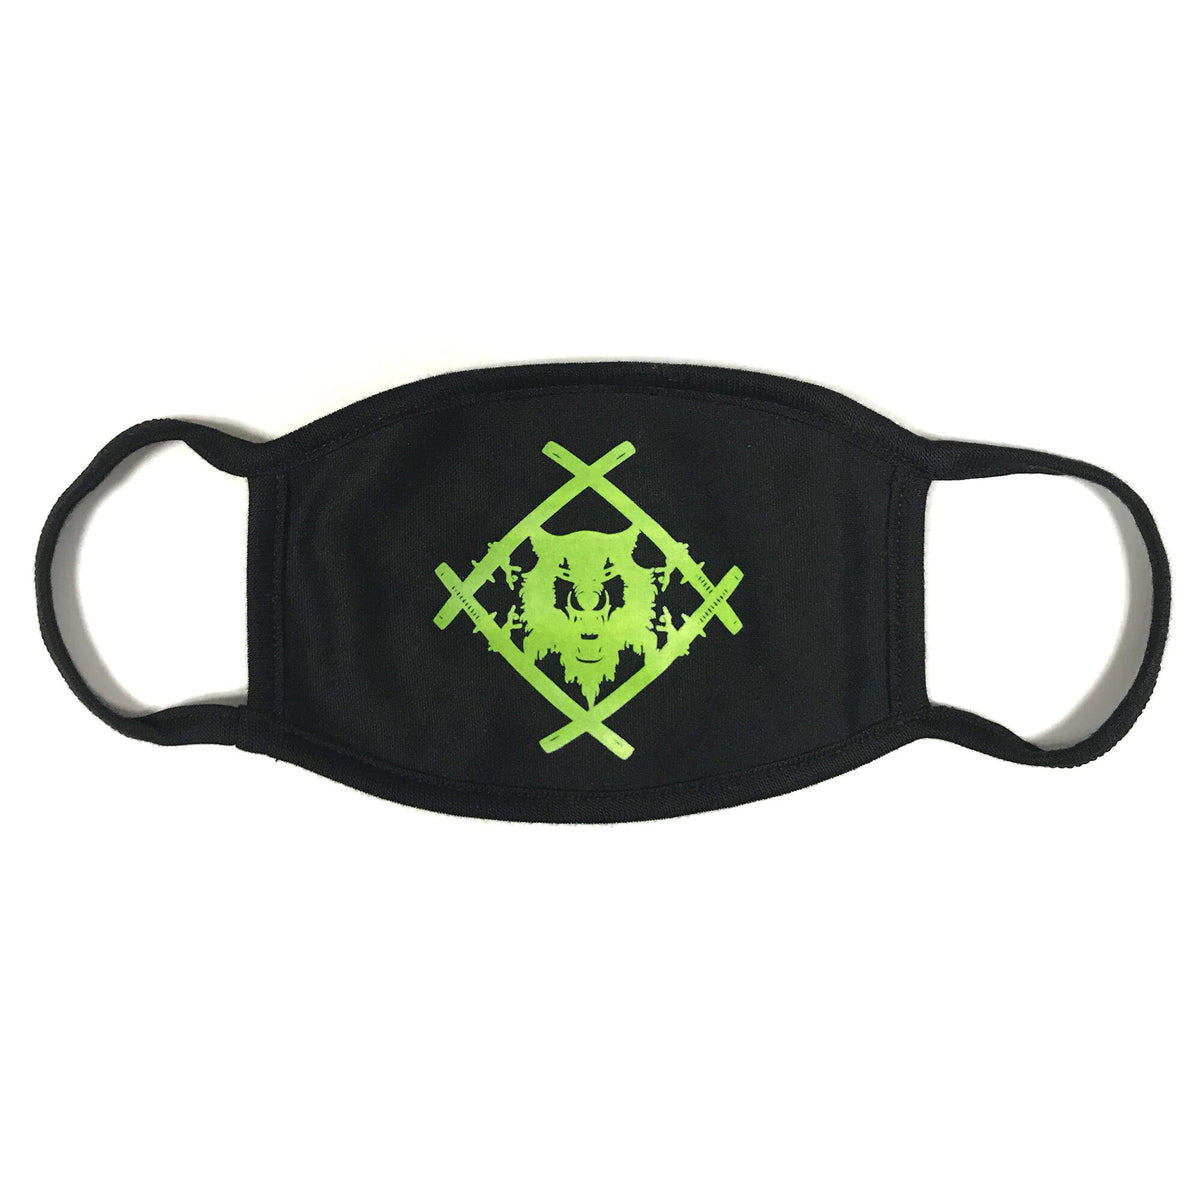 Hollowsquad Mask [NEON GREEN - LMTD]